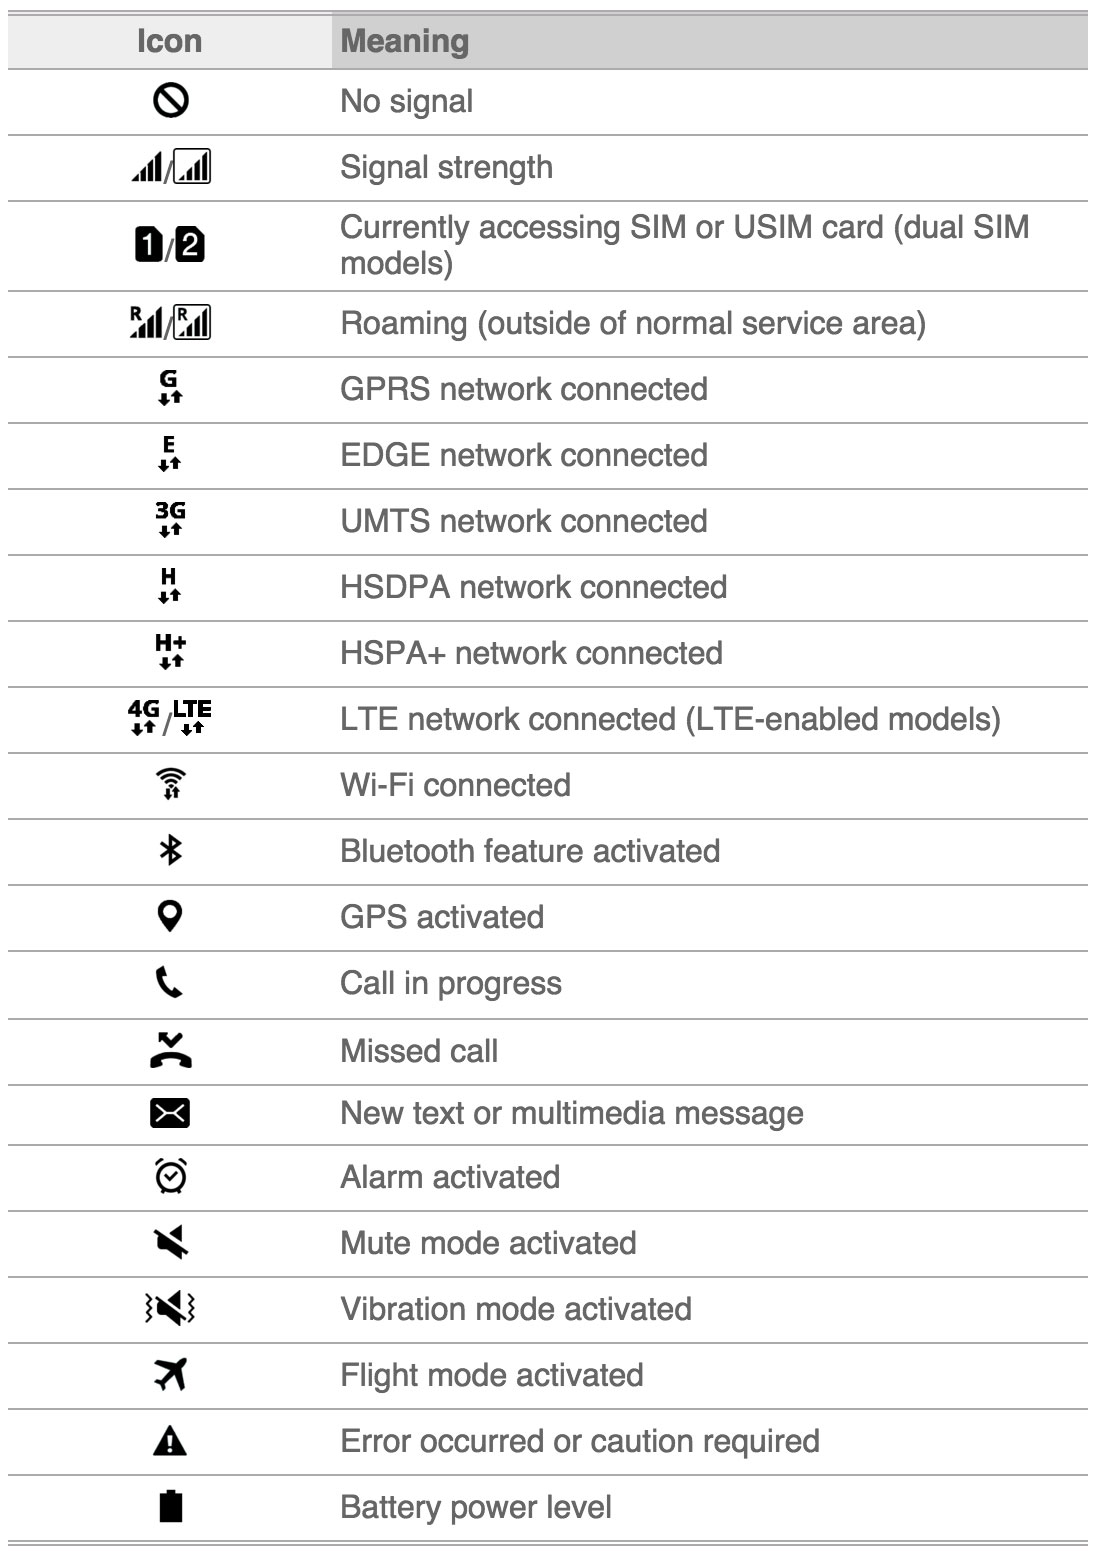 galaxy-s7-status-icon-meanings.jpg